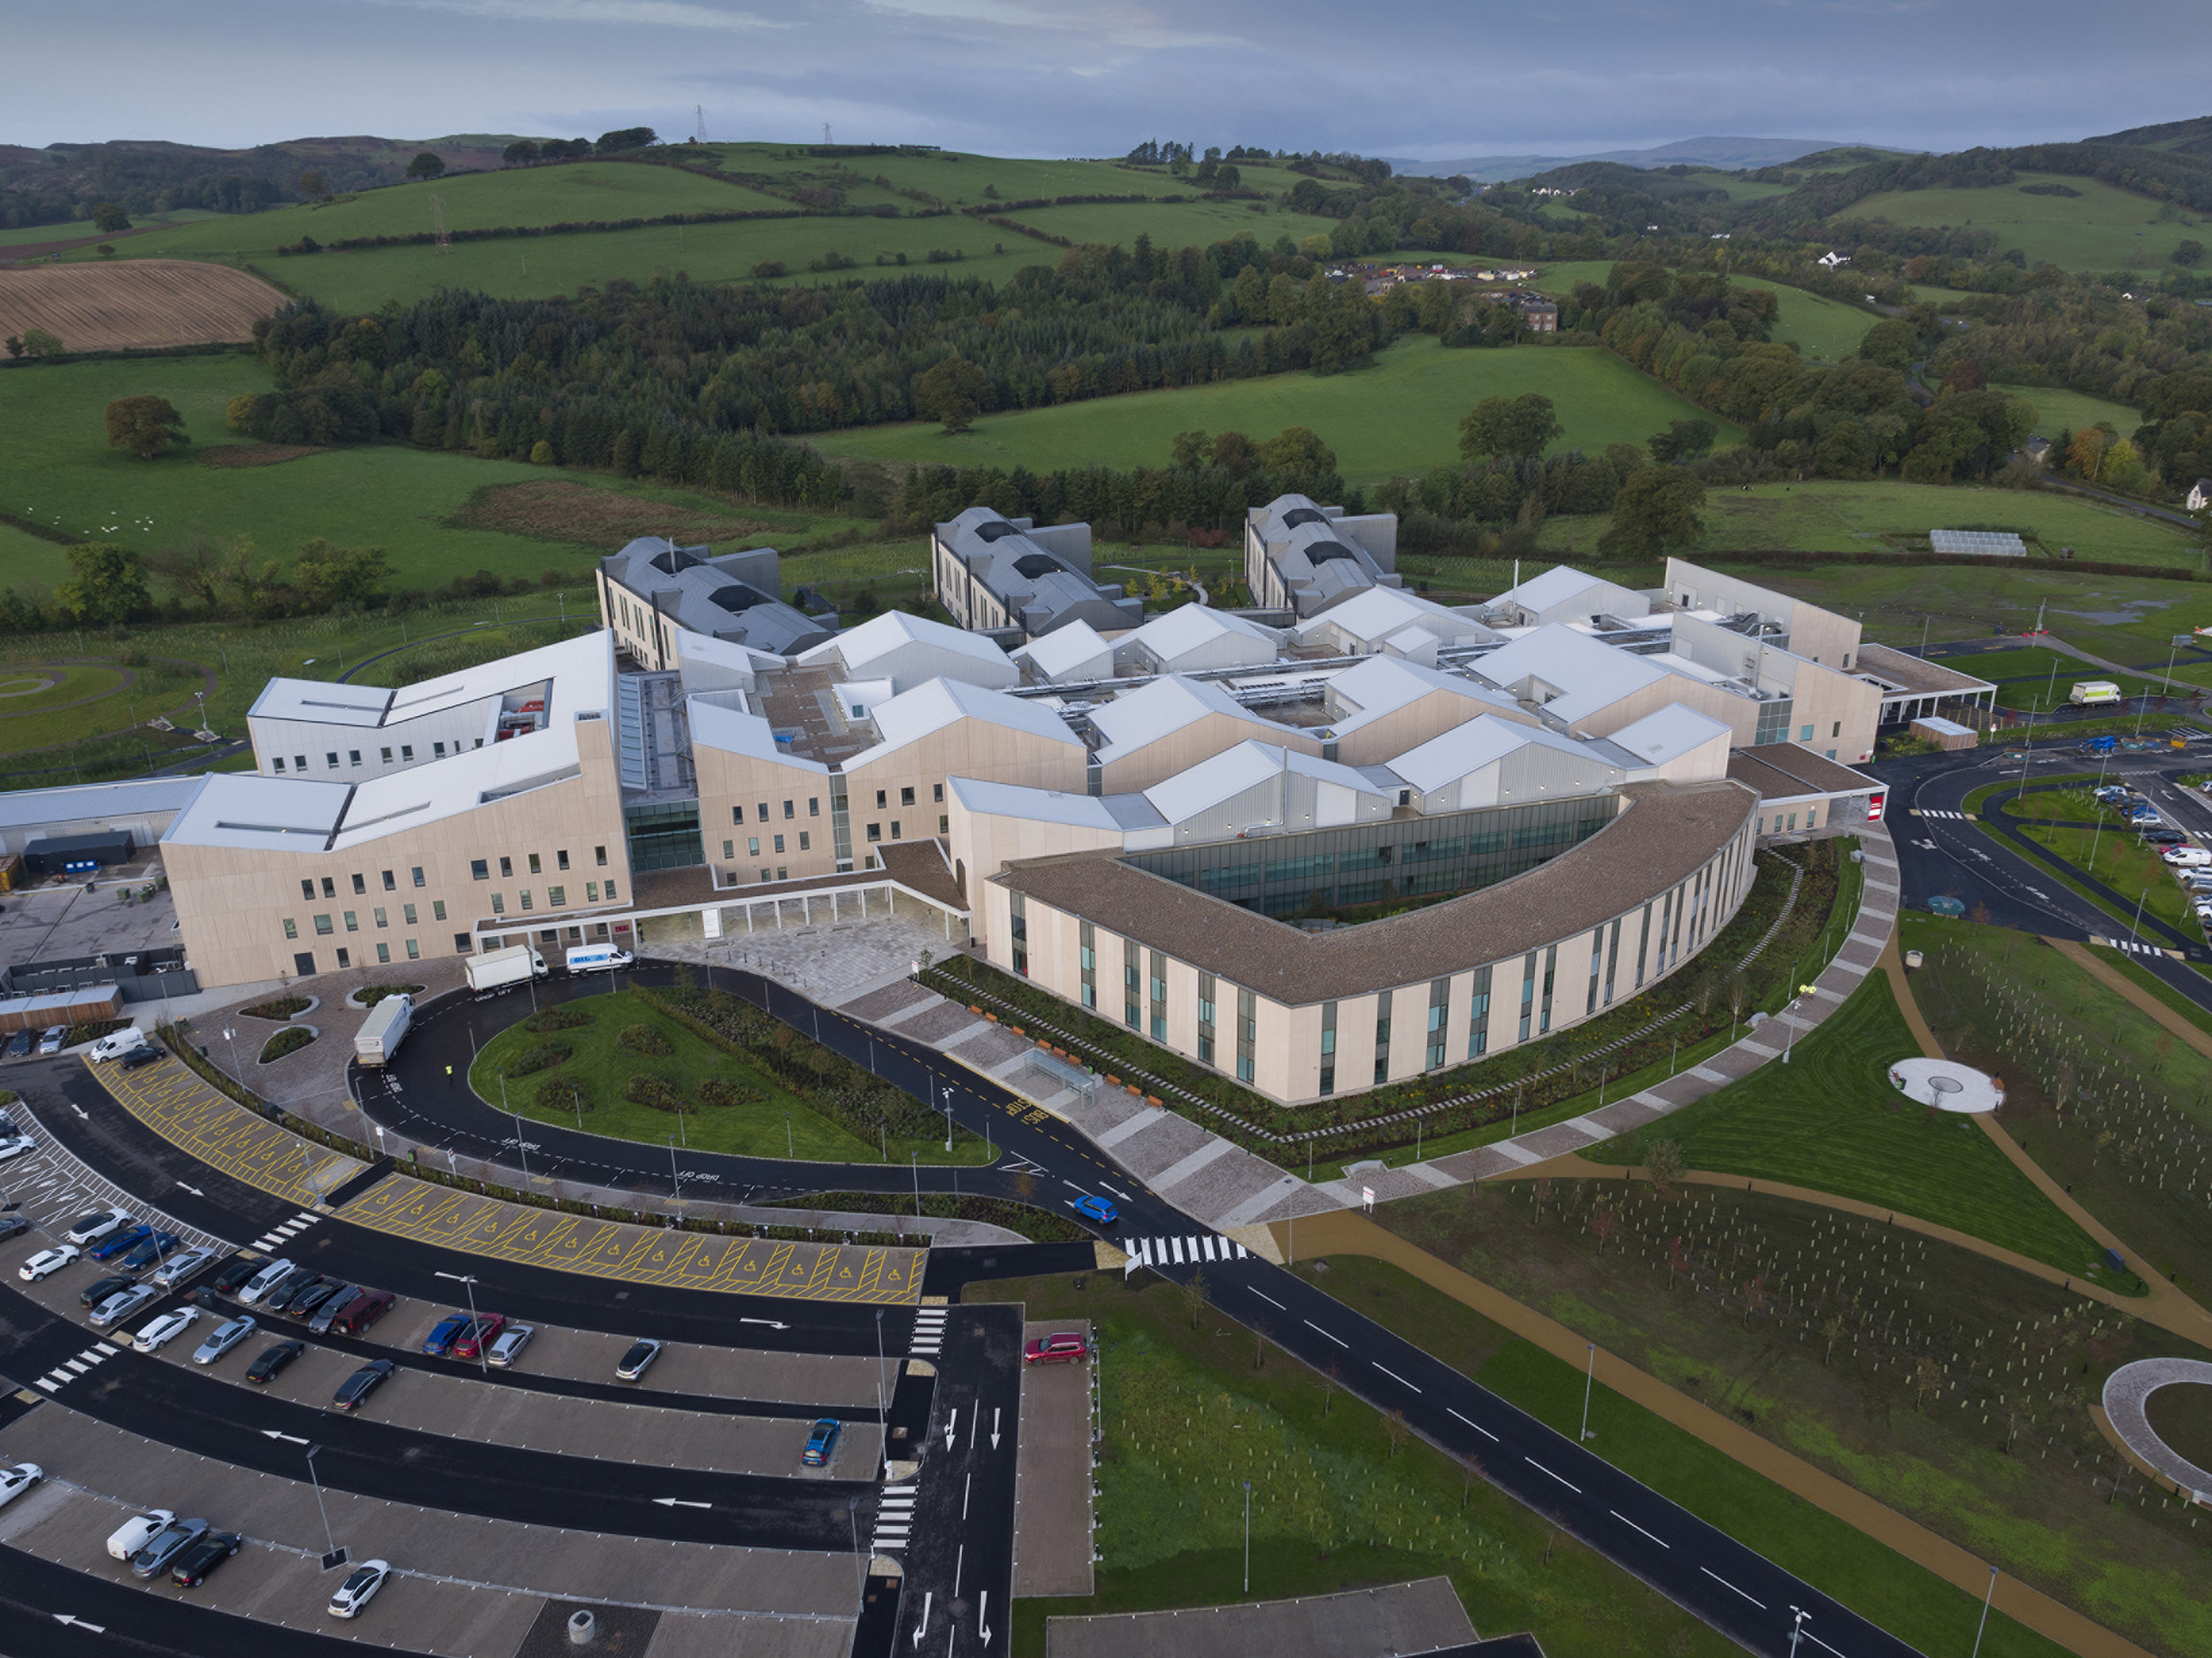 Dumfries & Galloway Royal Infirmary - Aerial View